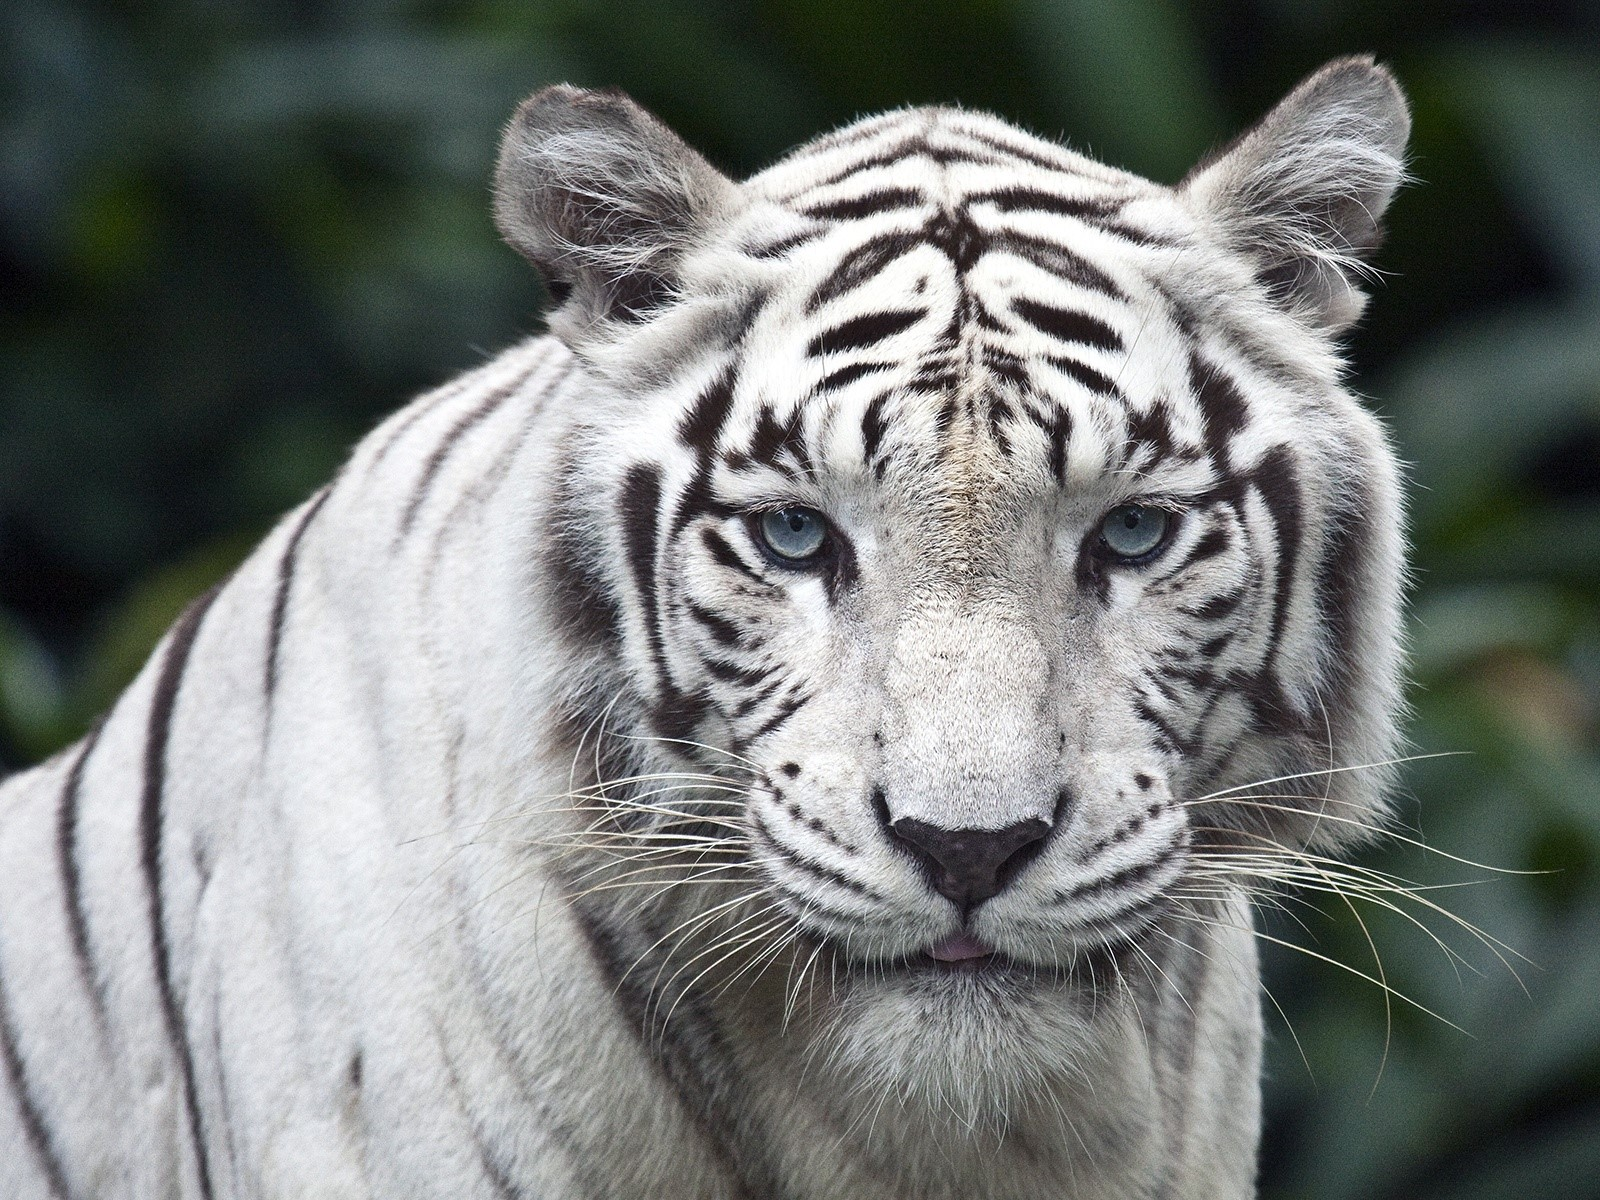 Tigre Blanco Wallpaper 1600x1200 Id1108